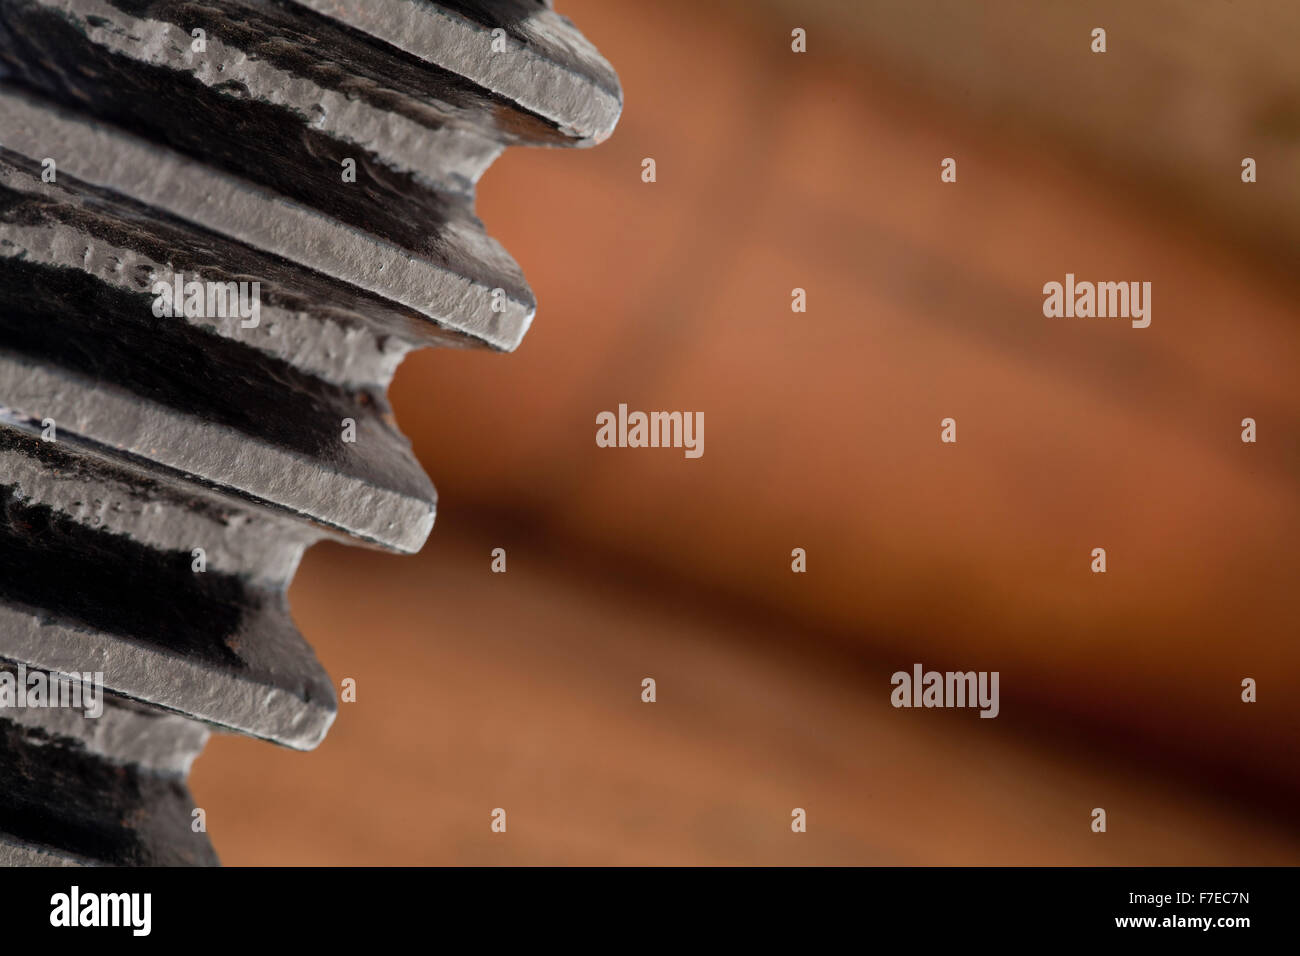 black cog on brown background or close-up of machine part - Stock Image